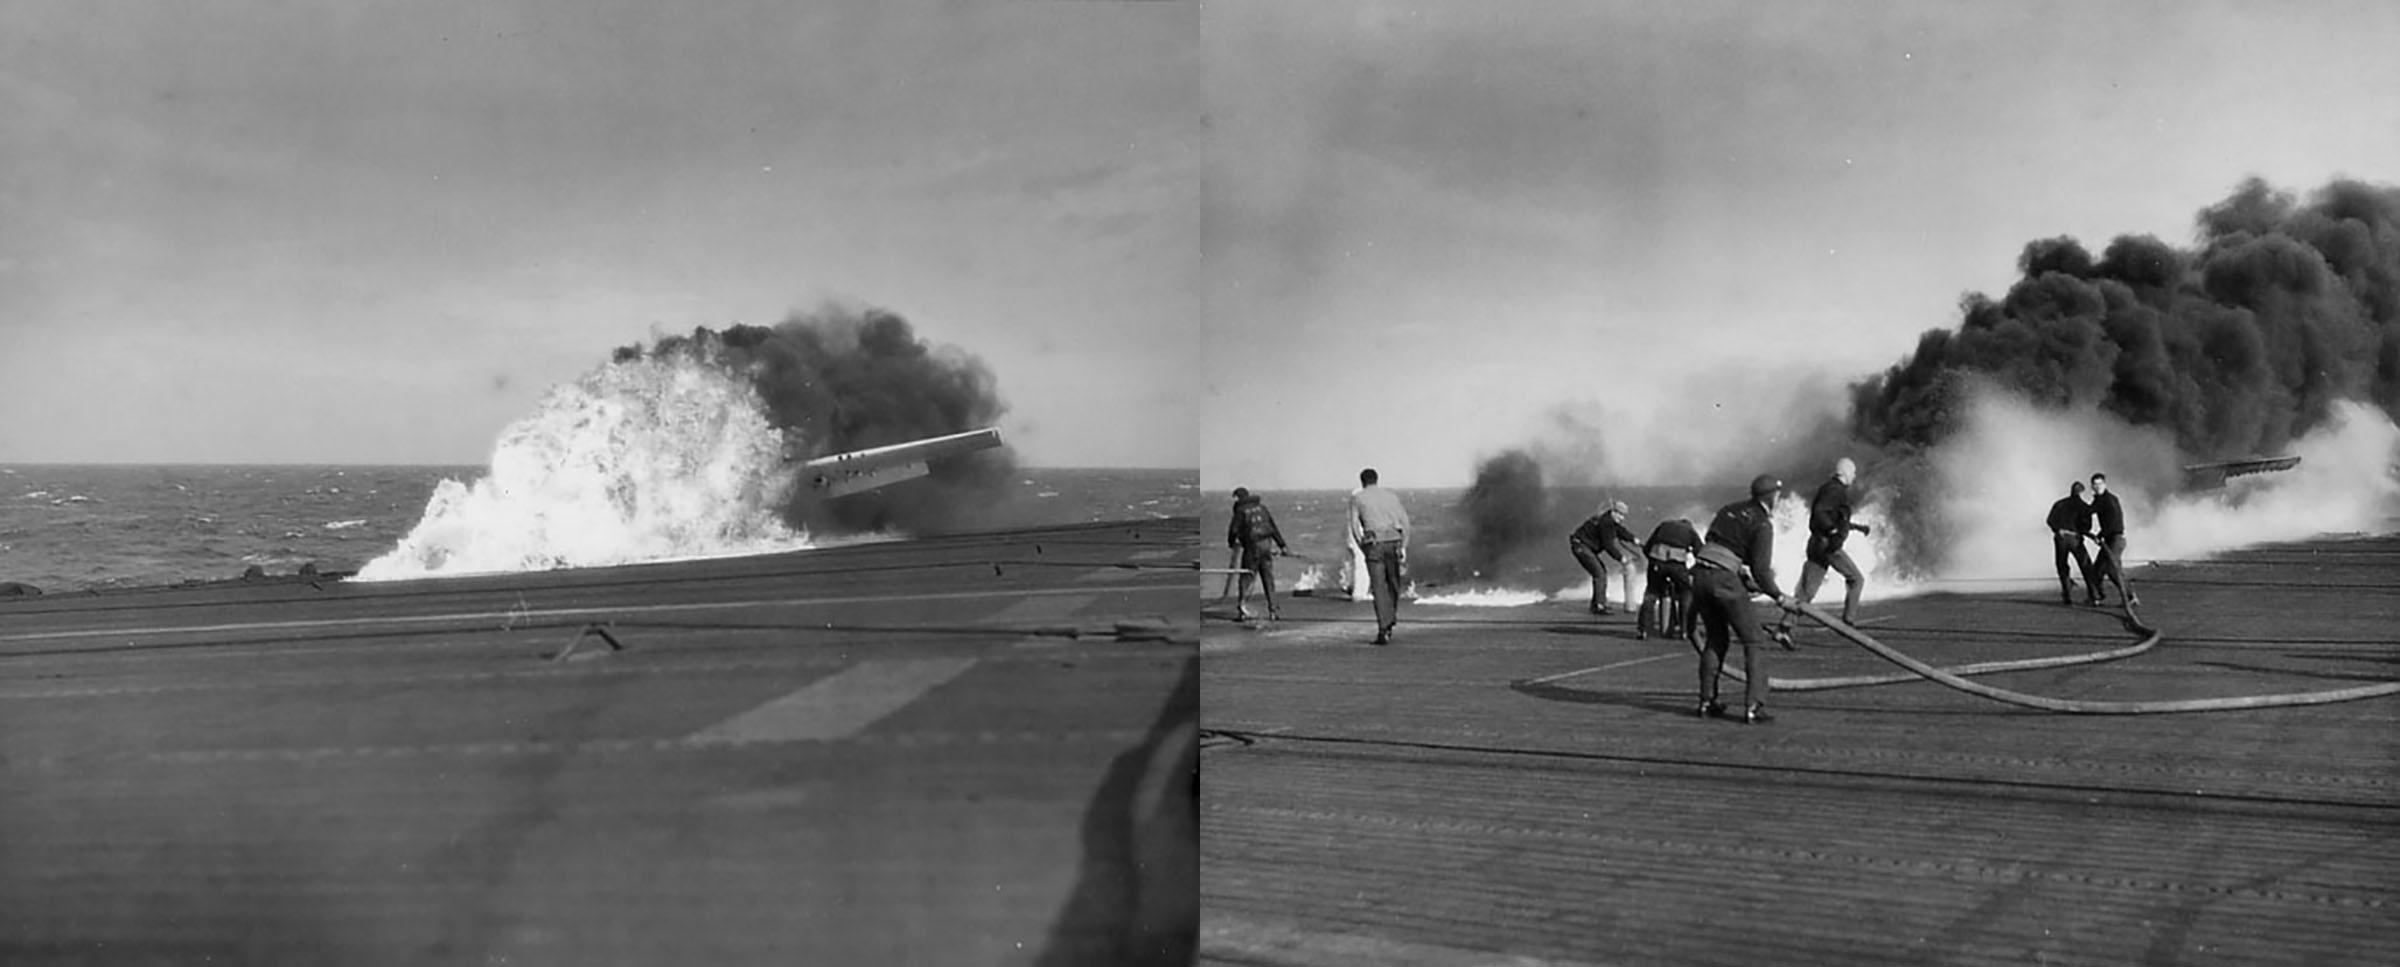 FM 2 Wildcat landing mishap and fuel tank explosion being tackled by USN carrier fire fighters 01